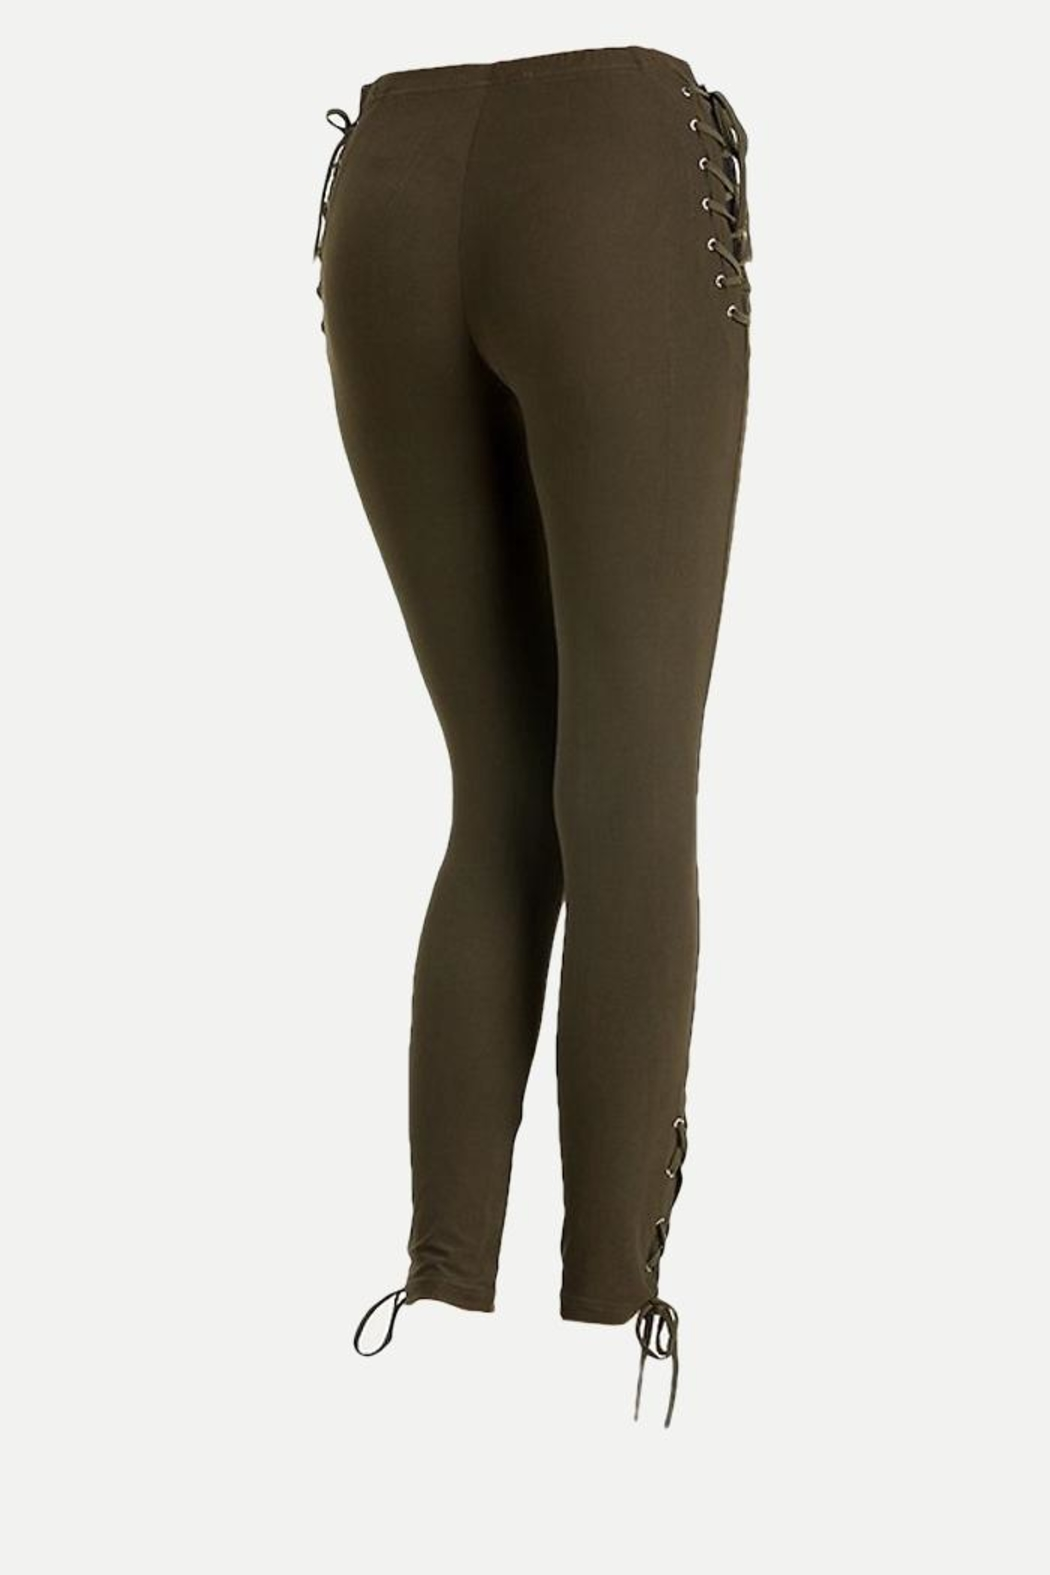 People Outfitter A-Fit Pants - Side Cropped Image